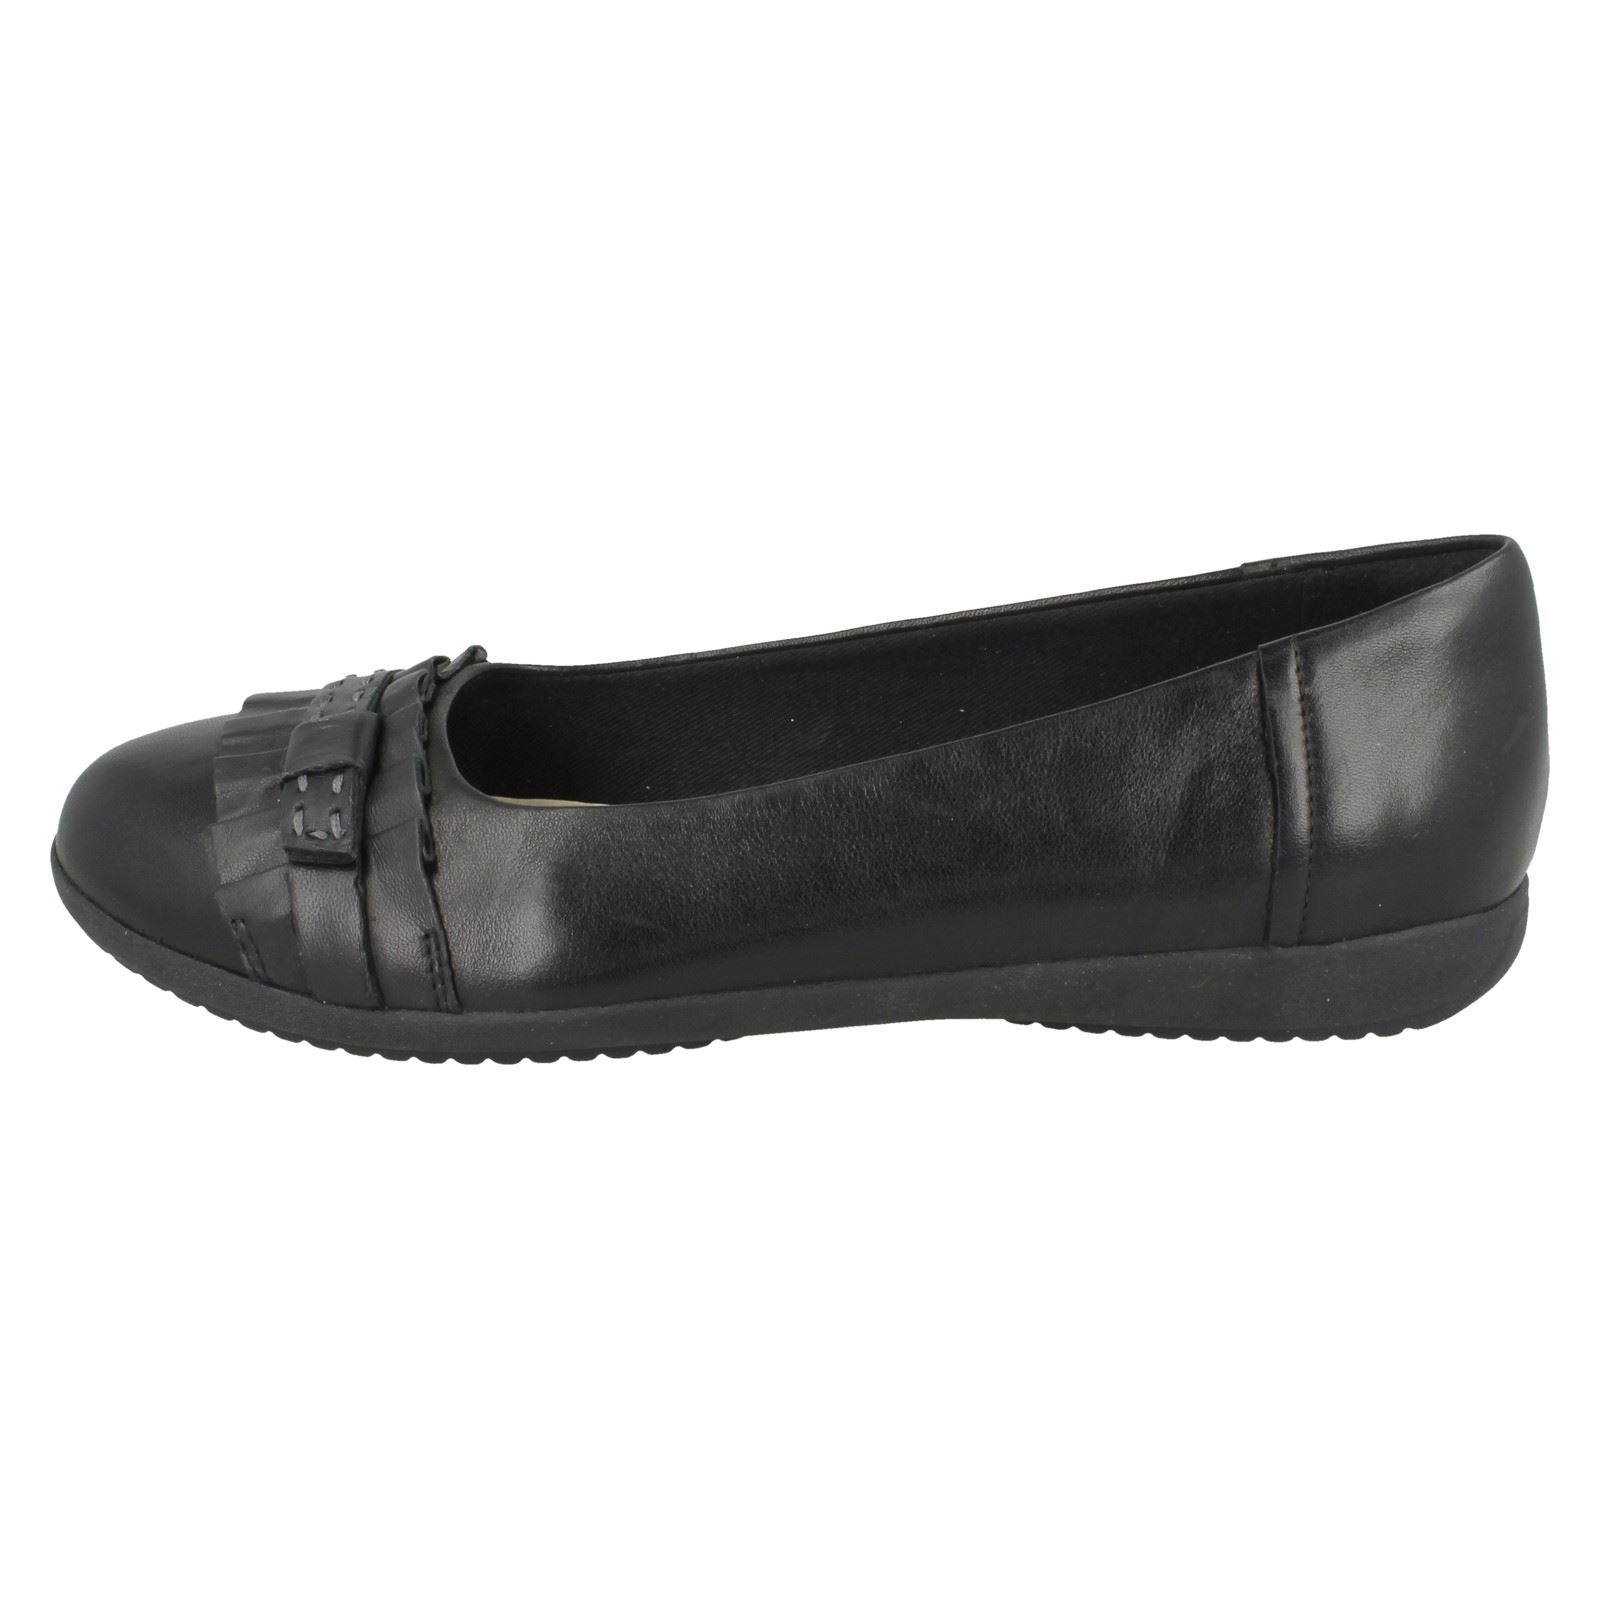 Feya Smart Clarks da pattinaggio On Island in da Slip pelle Scarpe donna wOfqv1